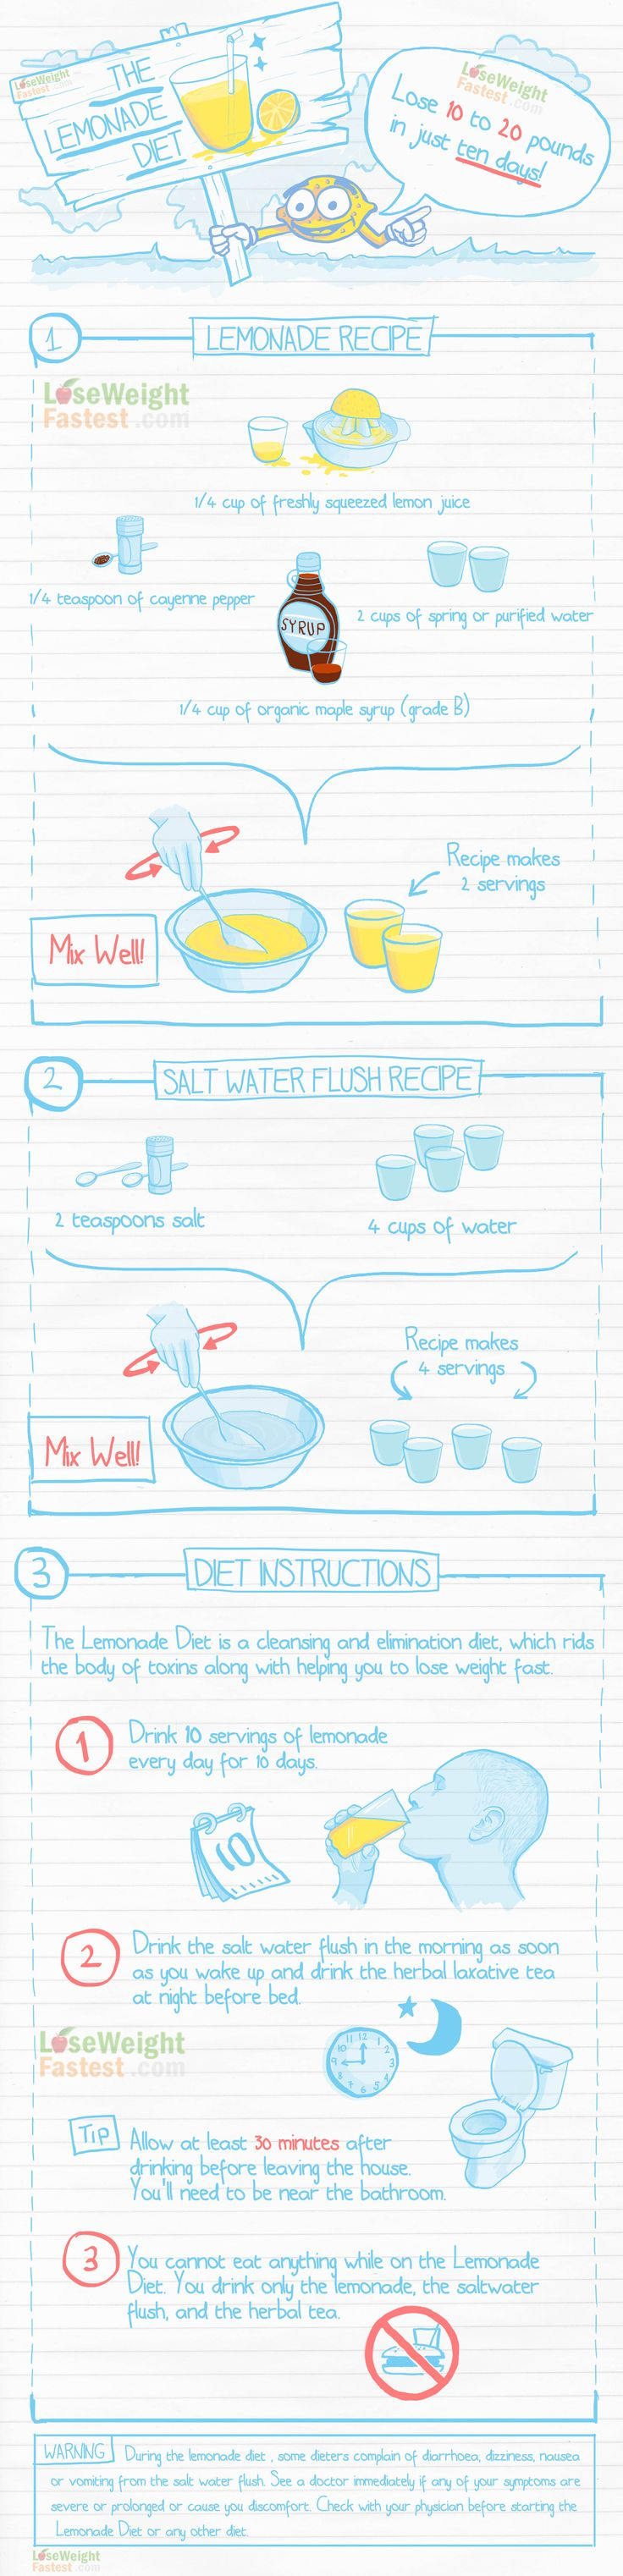 Lemonade Diet... always interested in cleanses and flushes I am just this crazy!!